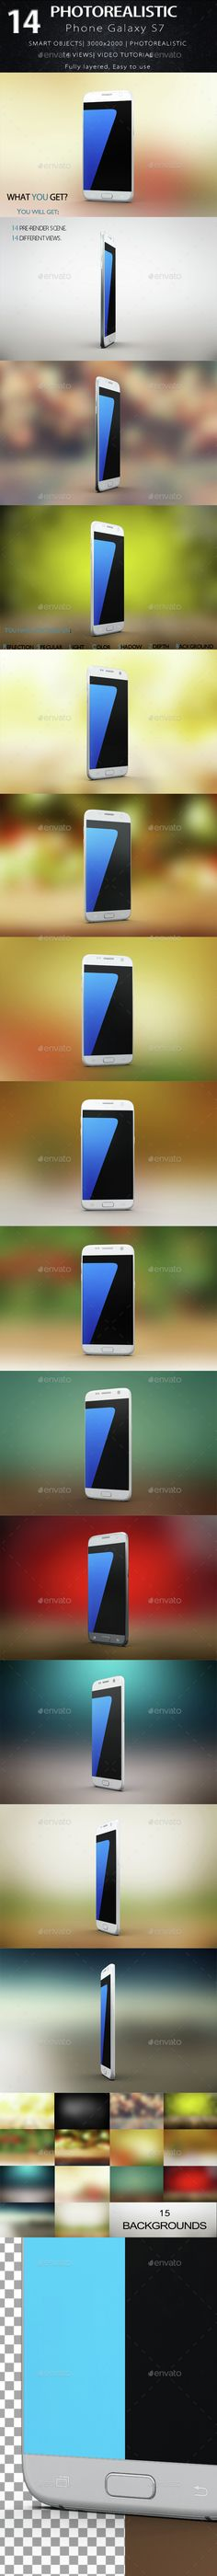 Smartphone Galaxy s7 Mock Up — Photoshop PSD #samsung galaxy s7 #galaxy s7 mockup new • Available here → https://graphicriver.net/item/smartphone-galaxy-s7-mock-up/15189095?ref=pxcr